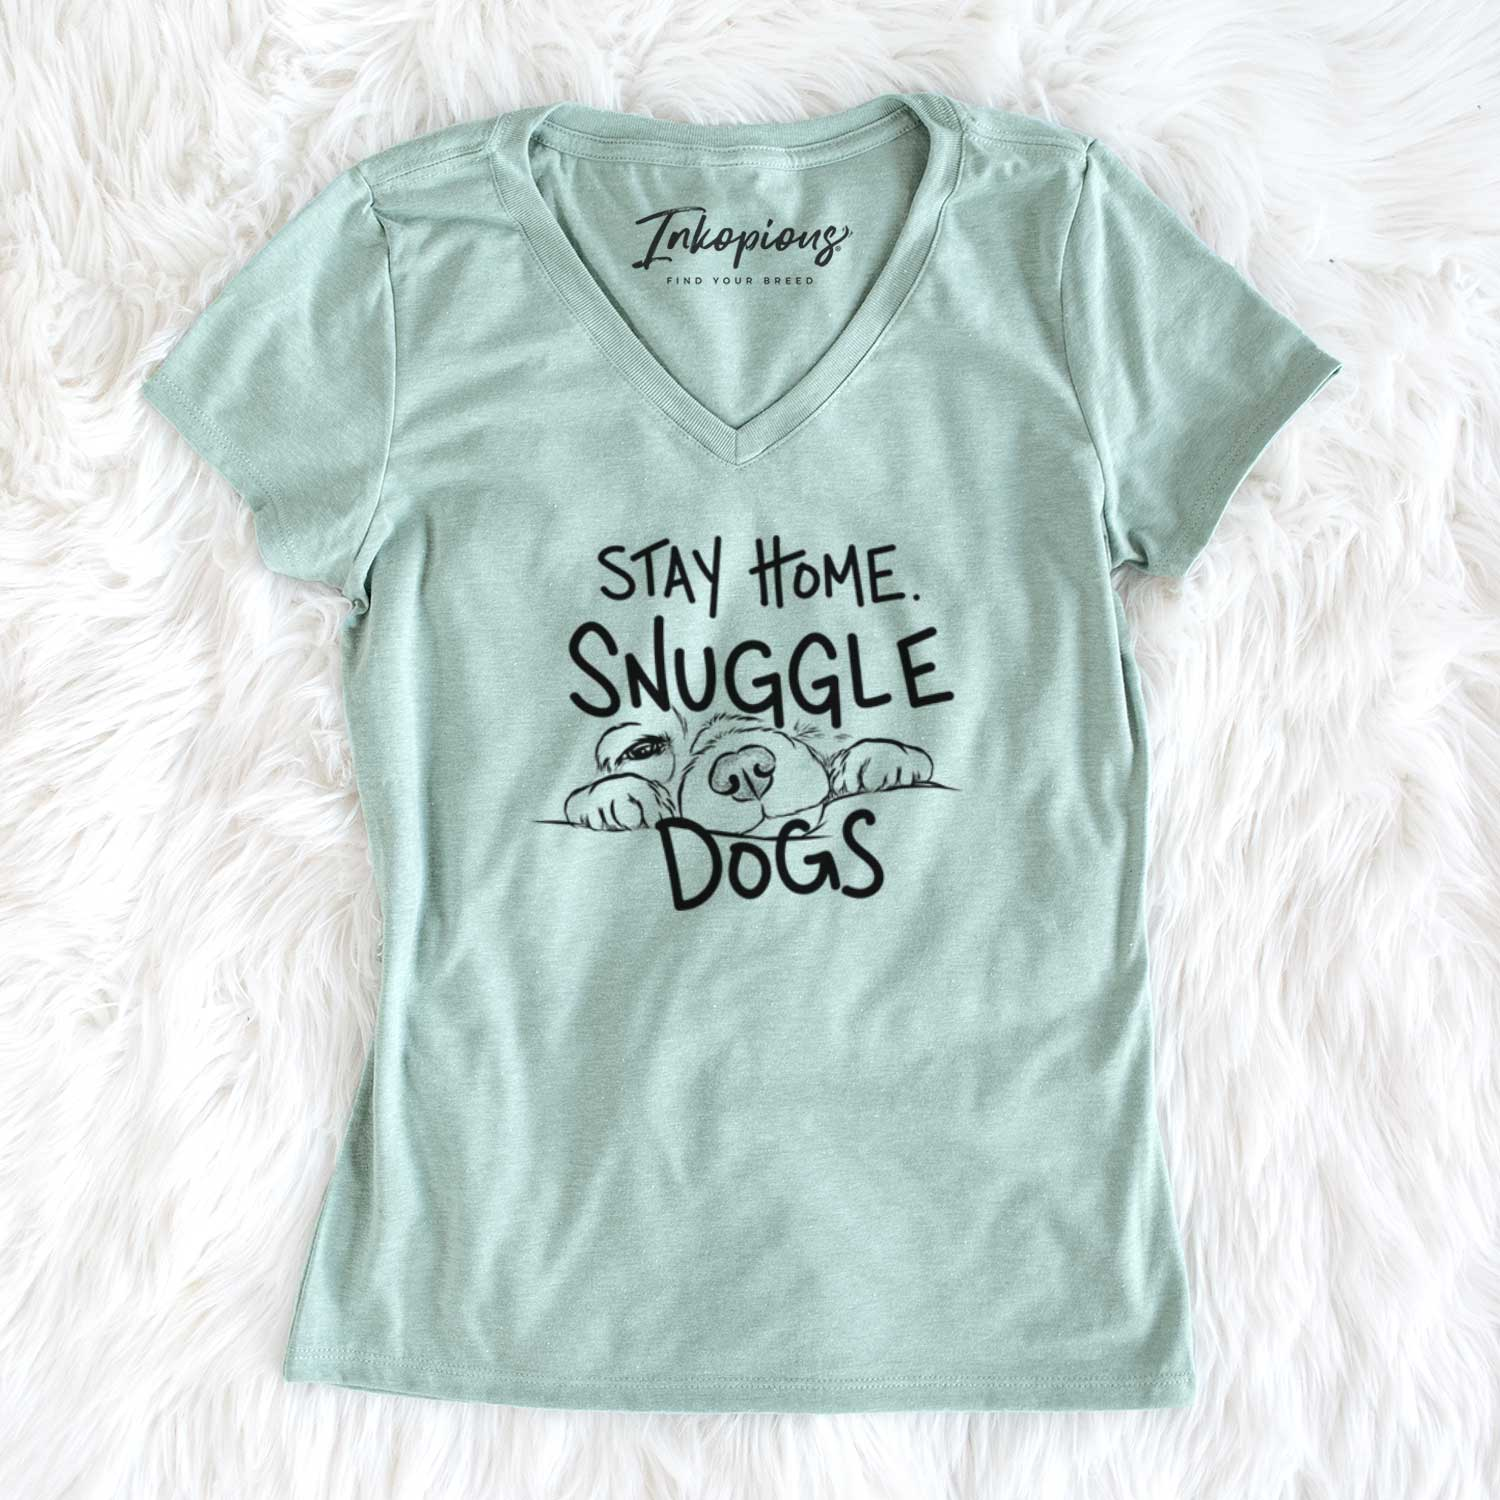 Stay Home Snuggle Dogs  - Women's Perfect V-neck Shirt